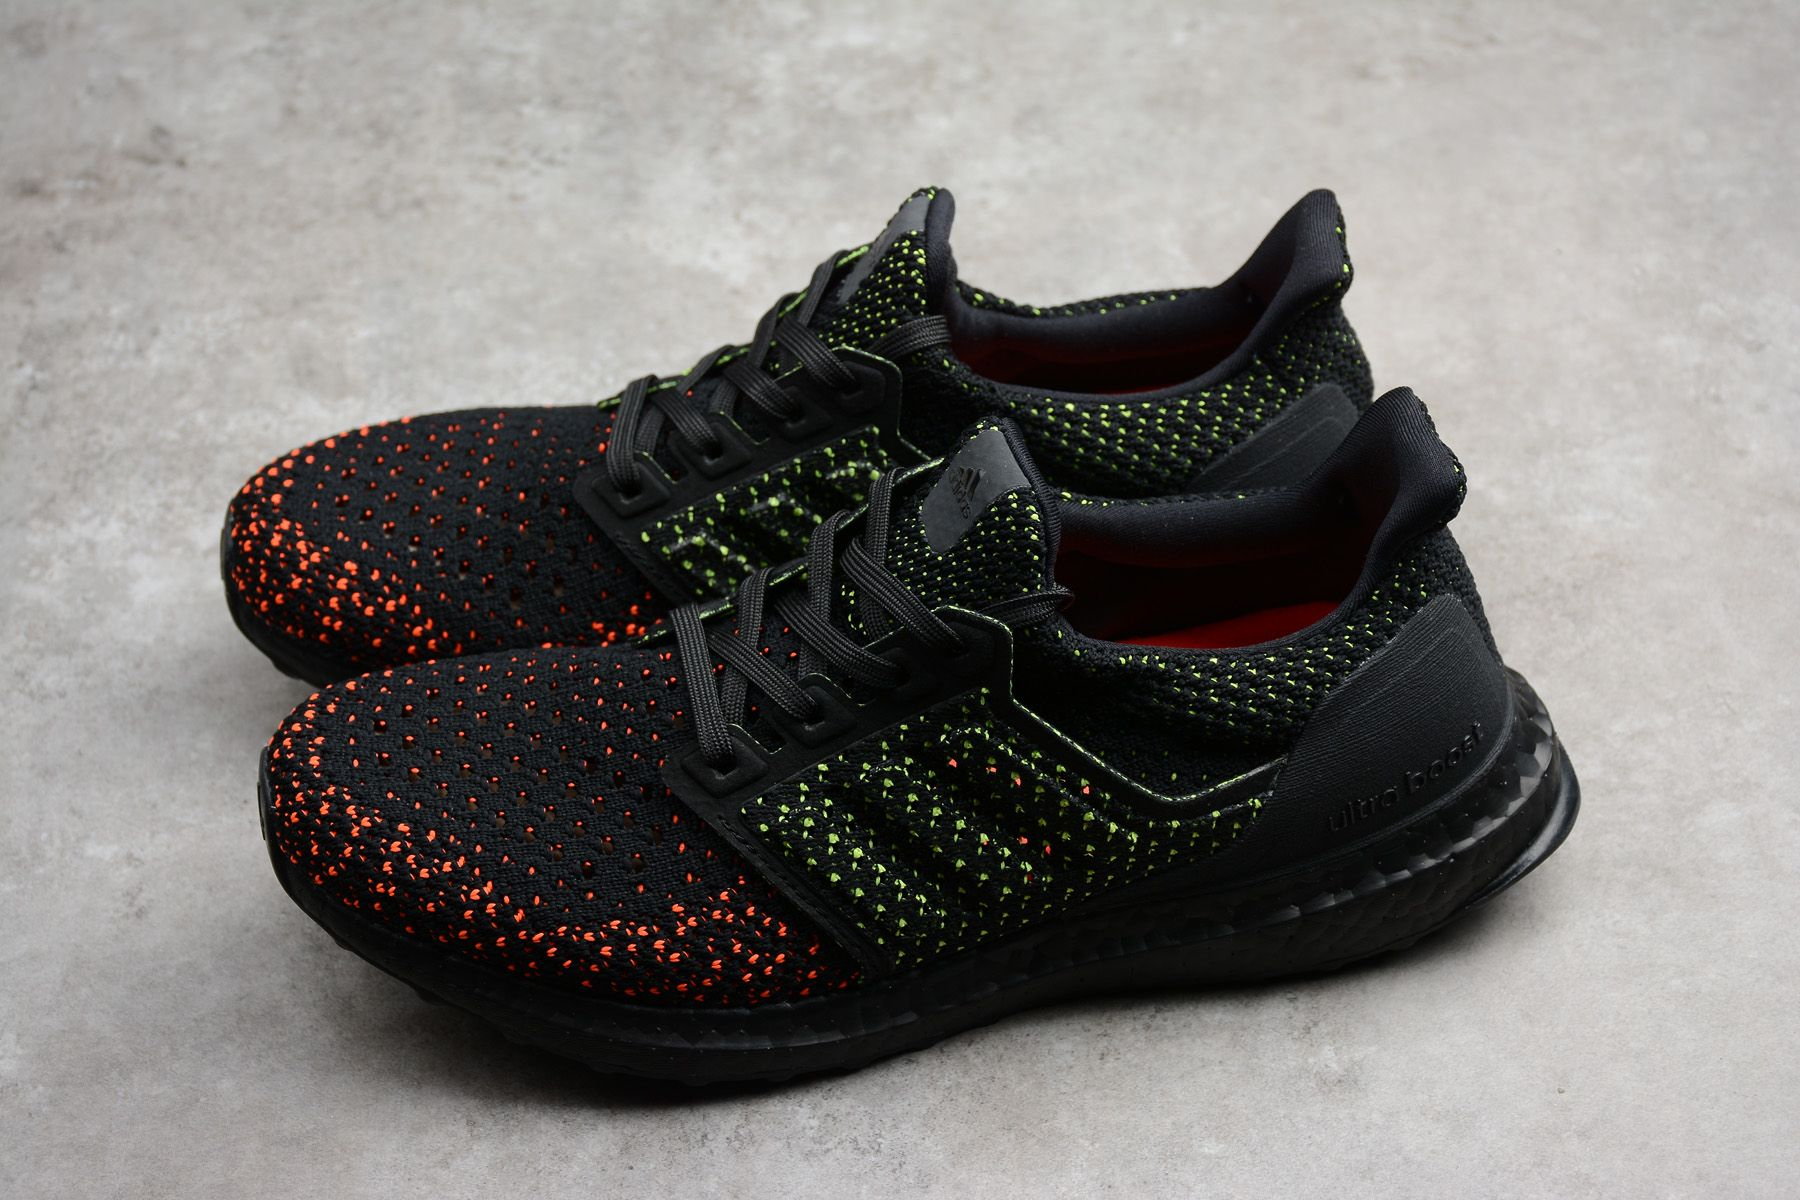 e8a3ba1ed Cheap adidas Ultra Boost Clima Core Black Solar Red AQ0482 Shoes for men  Online Sale